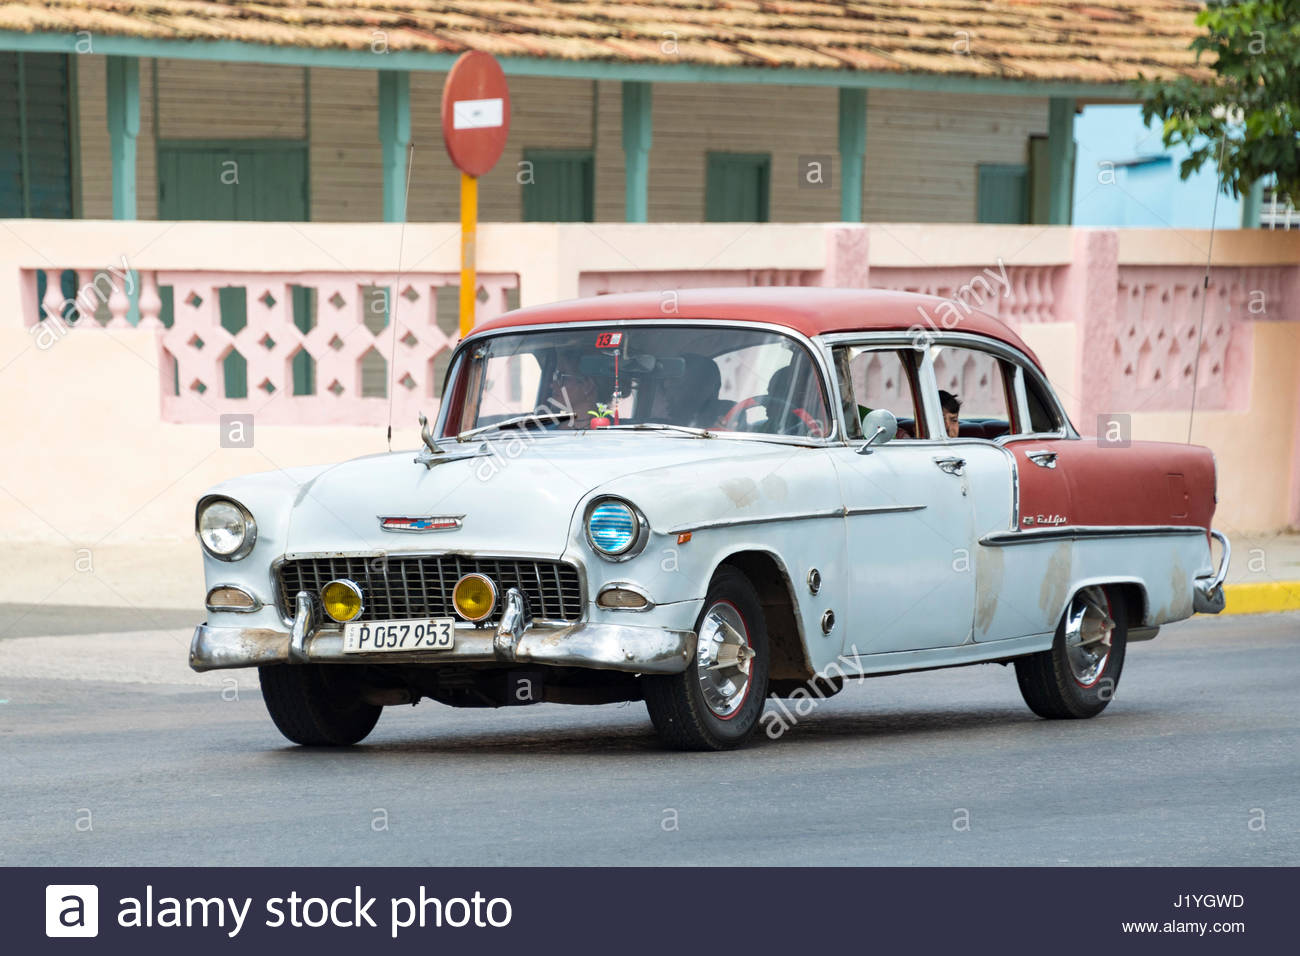 Chevrolet 1955. Old American vintage cars driving in good working ...